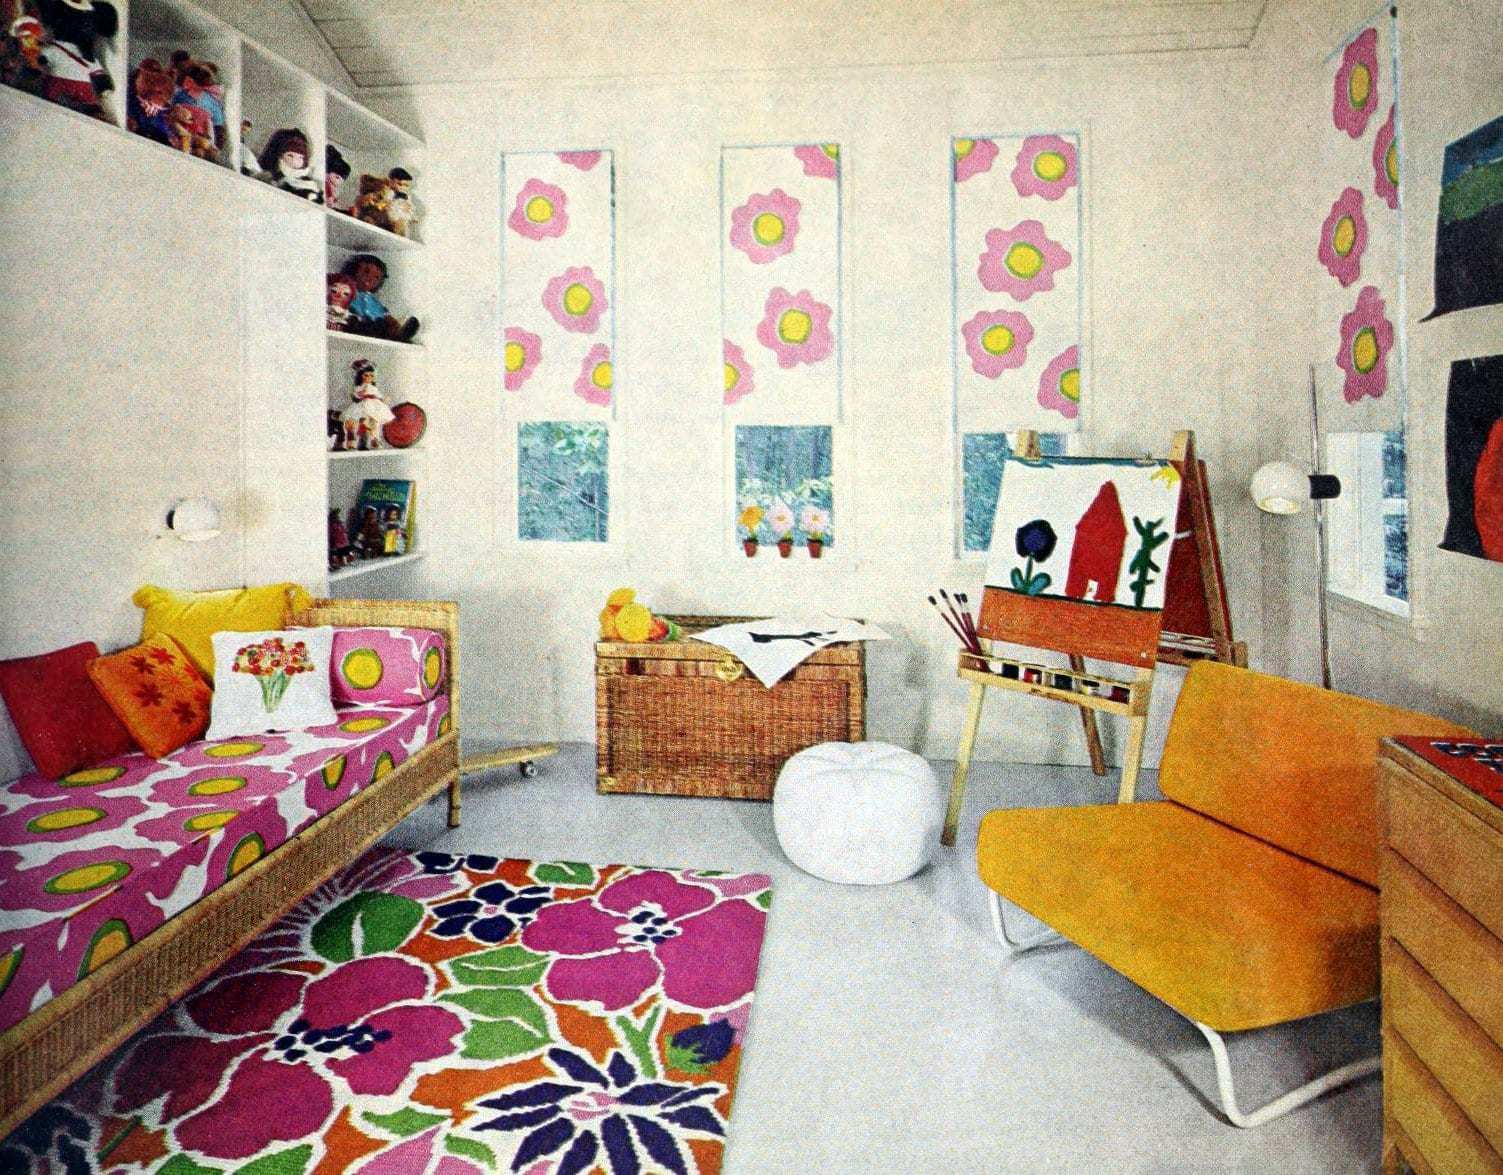 Pretty groovy floral room for a 70s girl